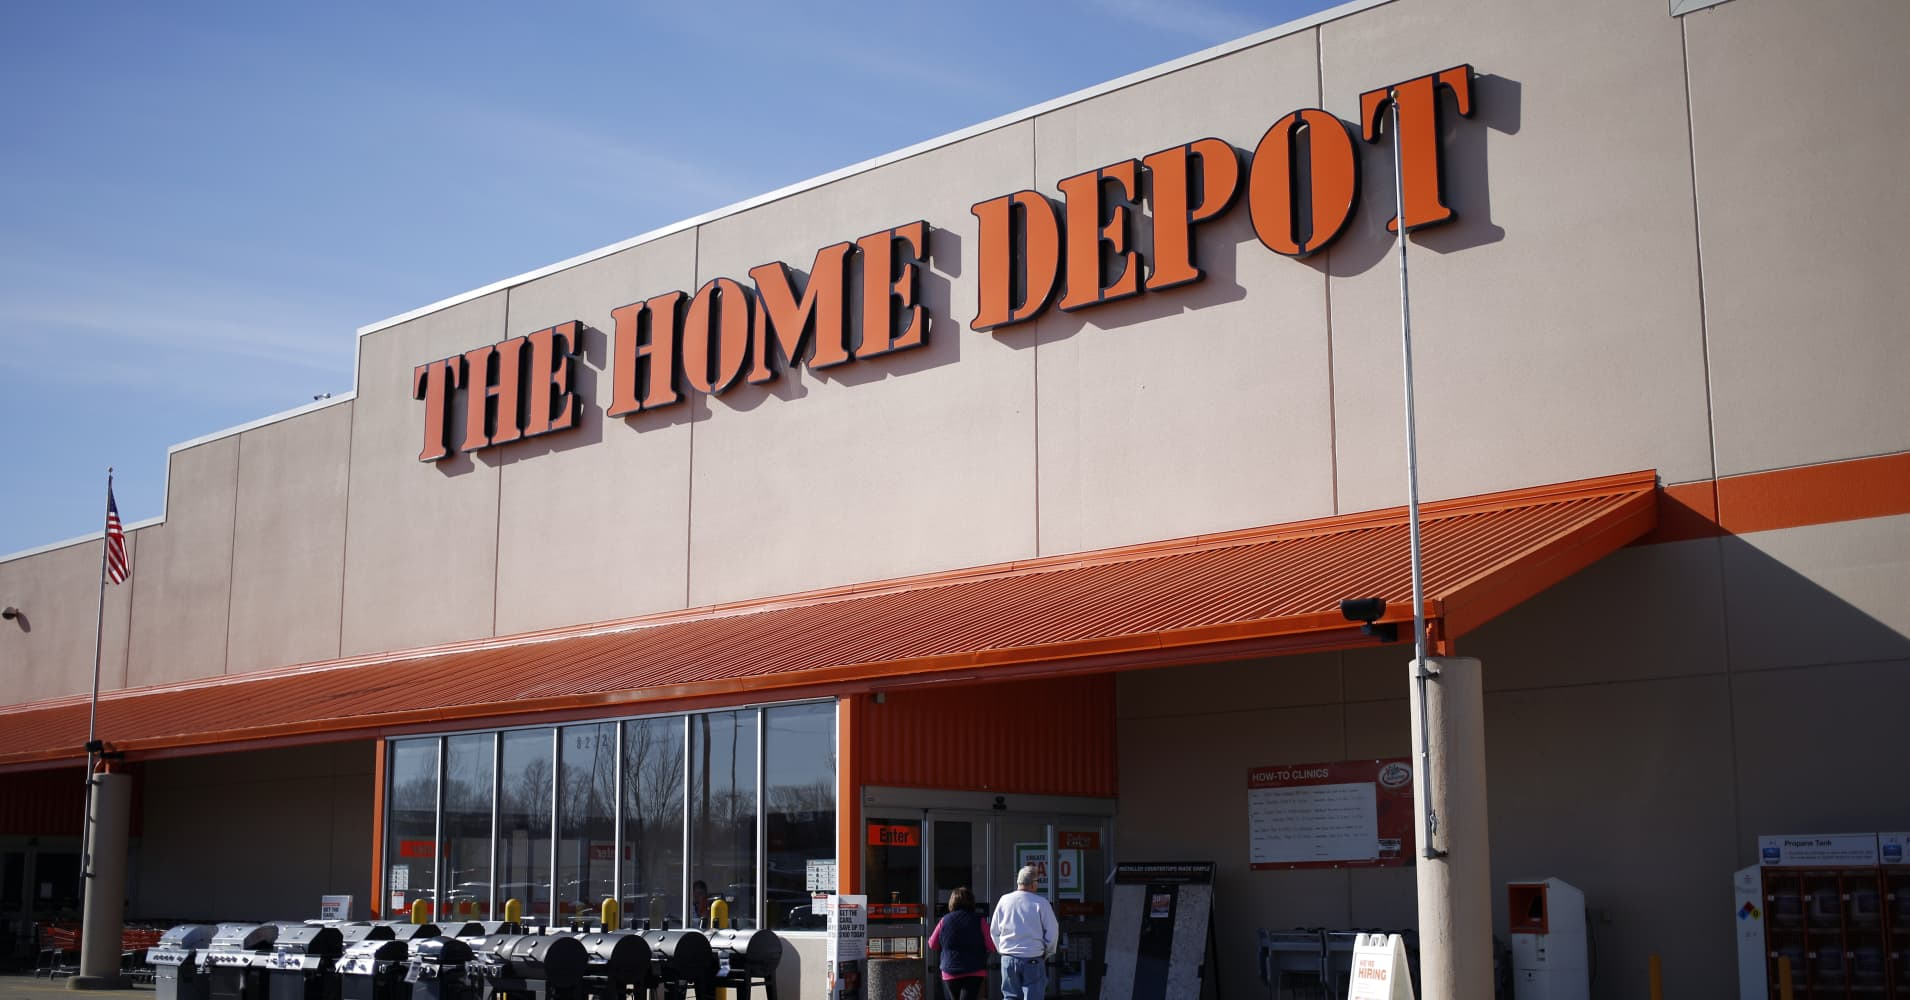 Bank St Home Depot Charts Point To Big Breakout For Home Depot Ahead Of Earnings Technician